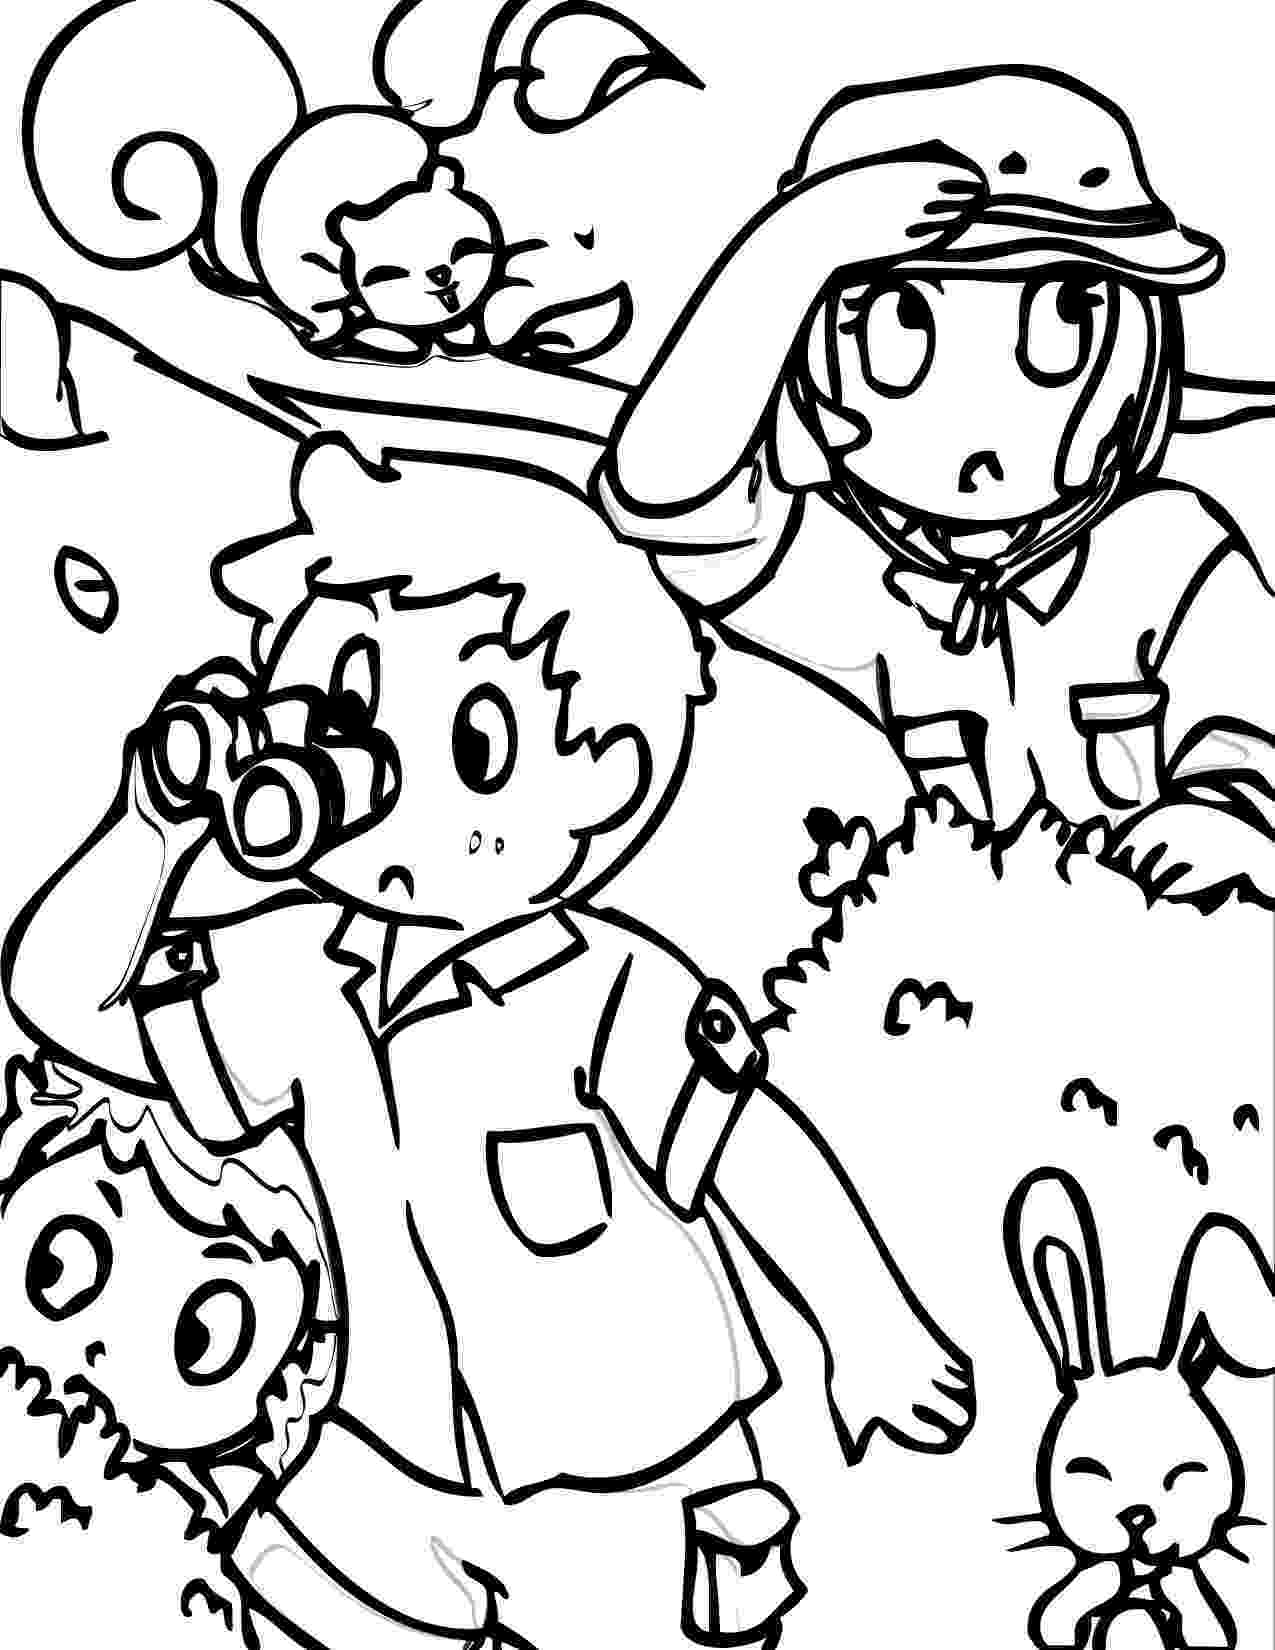 jungle animal coloring book pages safari coloring pages to download and print for free book jungle coloring animal pages